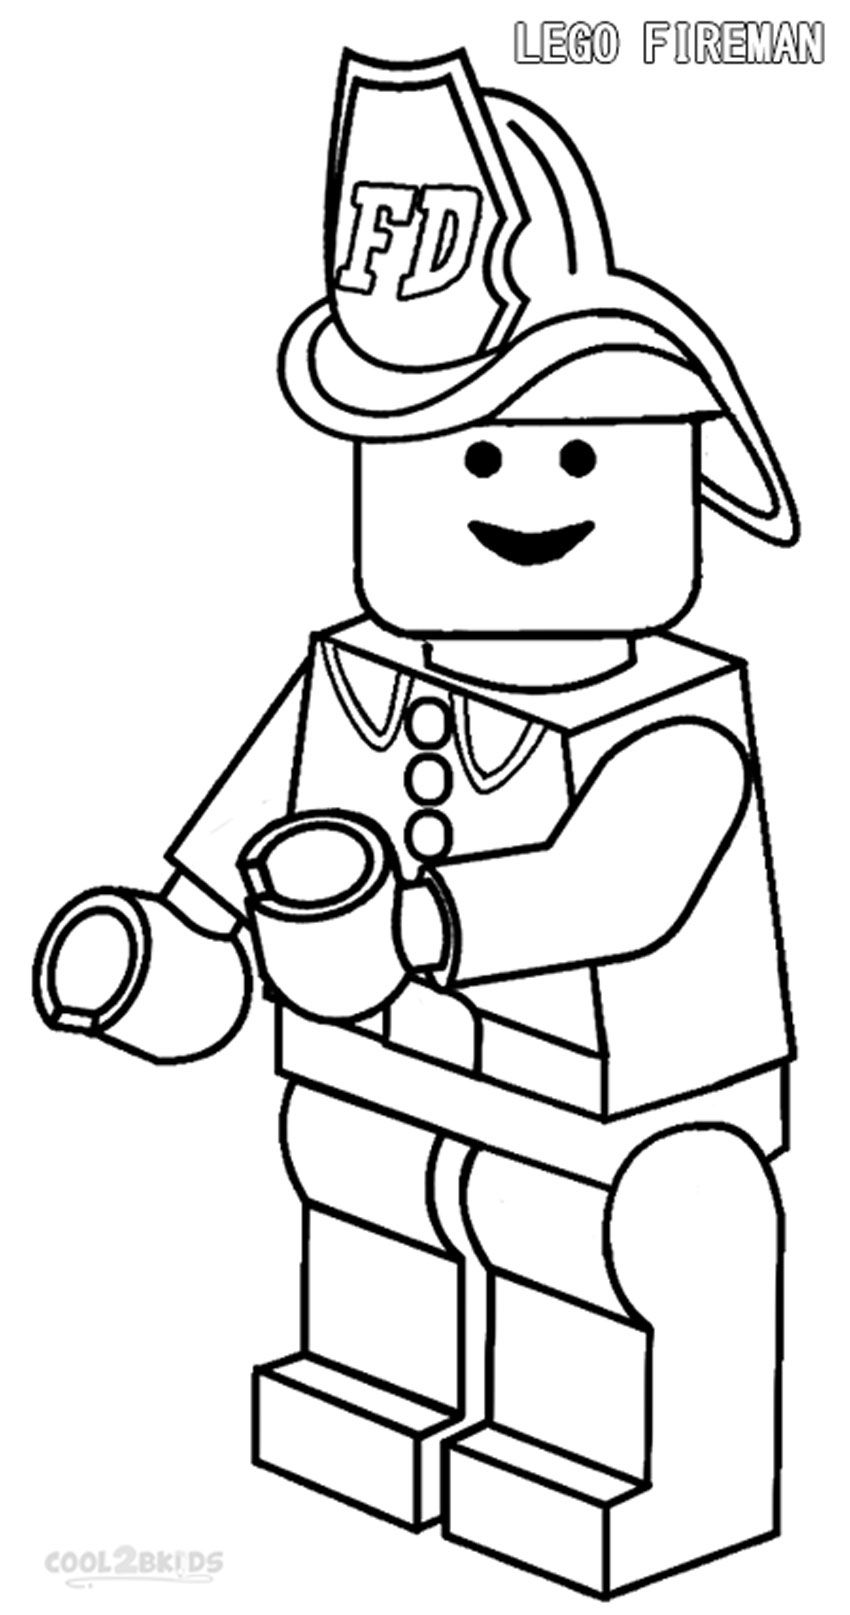 Santa Fireman Coloring Page With Free Printable Pages Cool2bKids Miscellaneous